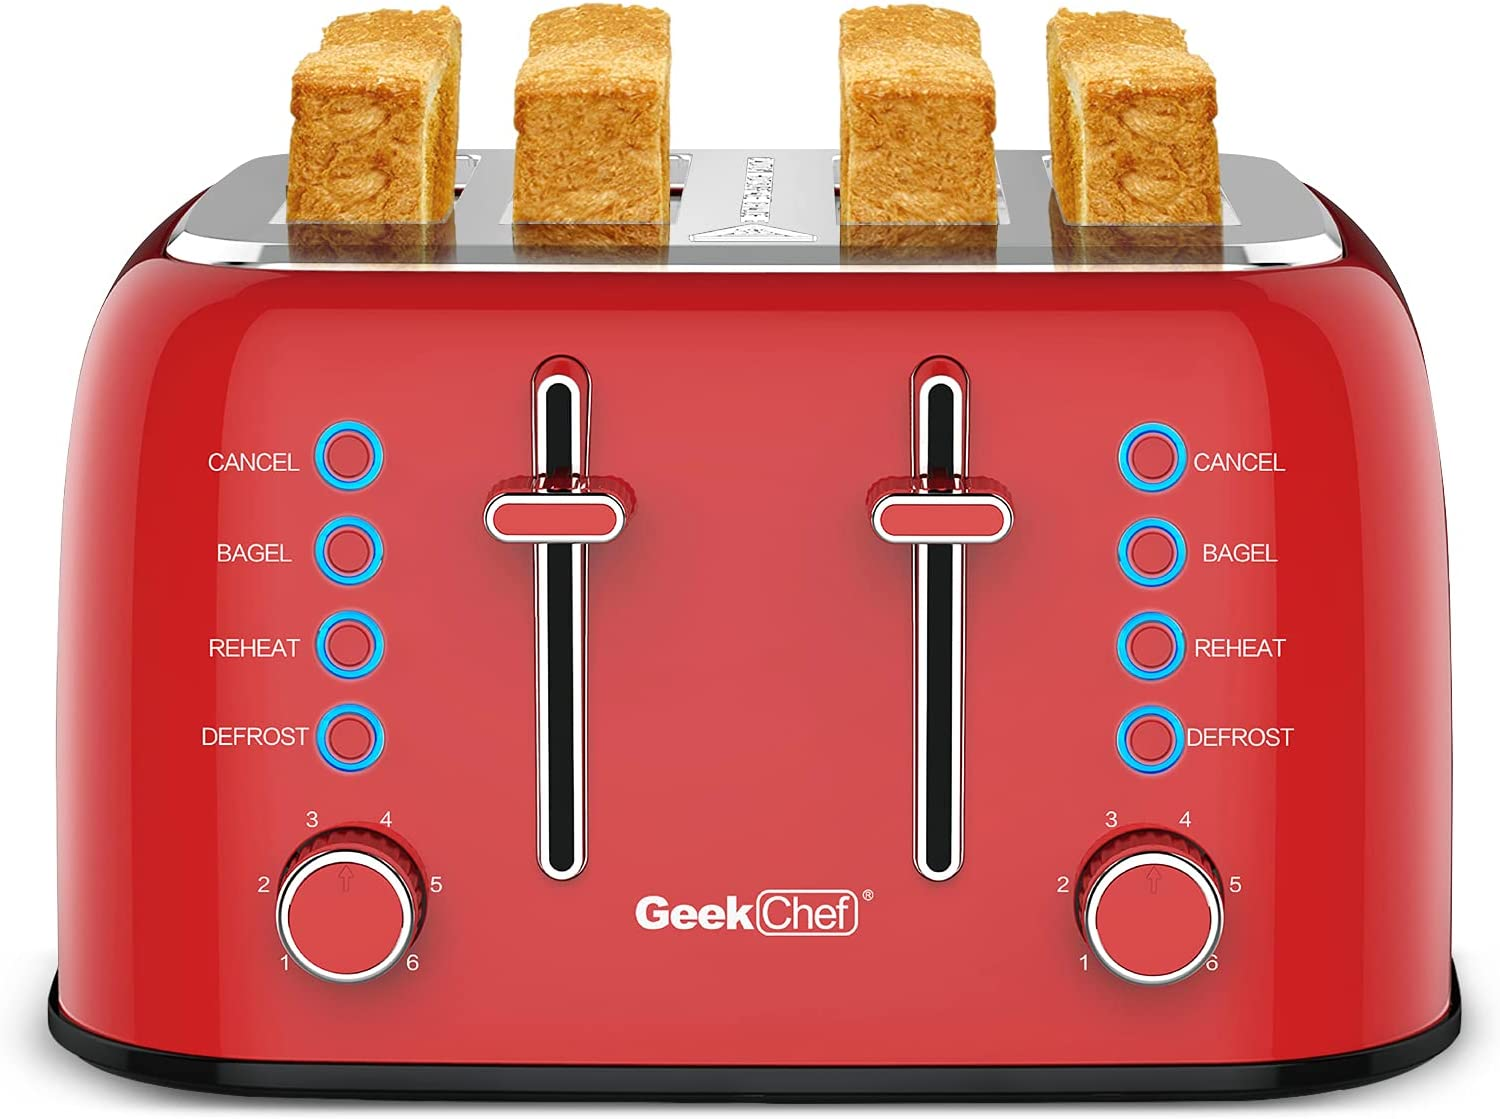 Toaster 4 Slice, Geek Chef Retro Stainless Steel Extra-Wide Slot Toaster, Bagel/Defrost/Cancel Function, 6-Shade Settings, High Lift Lever, Removable Crumb Trays